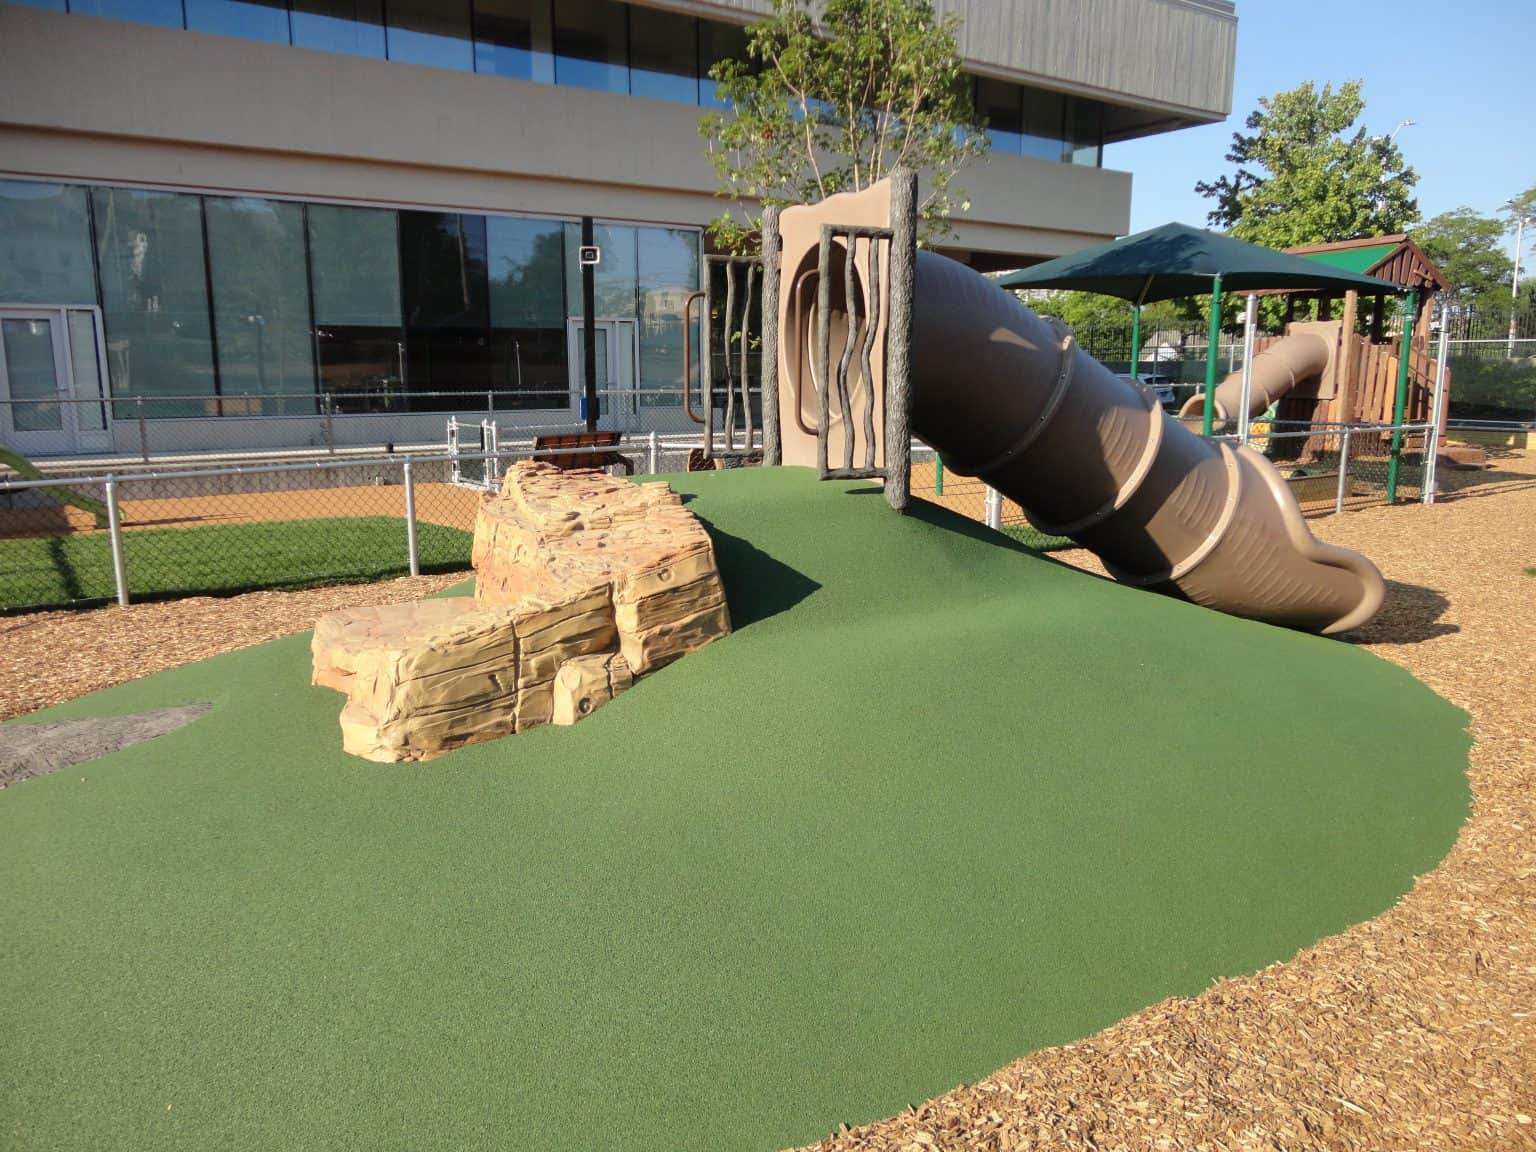 phyllis-bodel-daycare-playground-new-haven-ct_17939686978_o-1536x1152